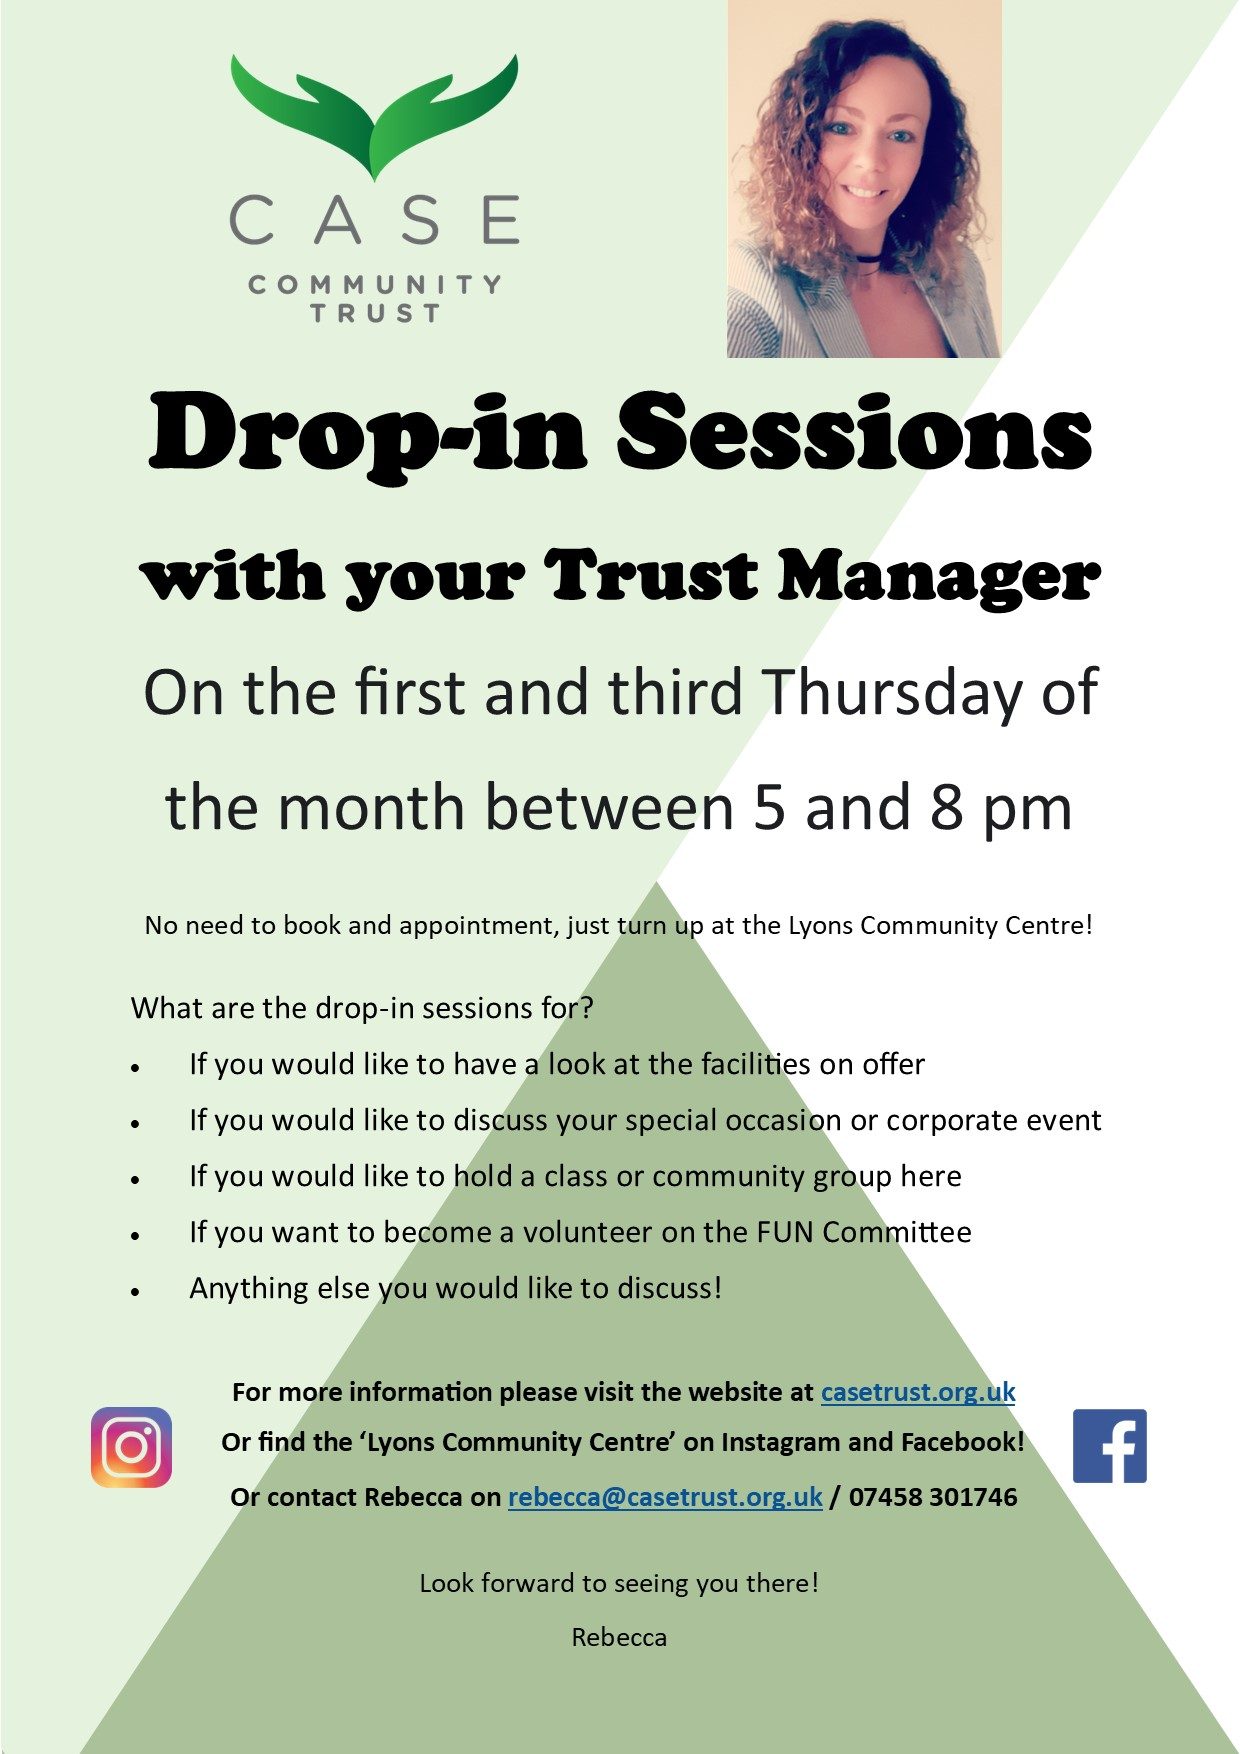 Drop-in Sessions Poster